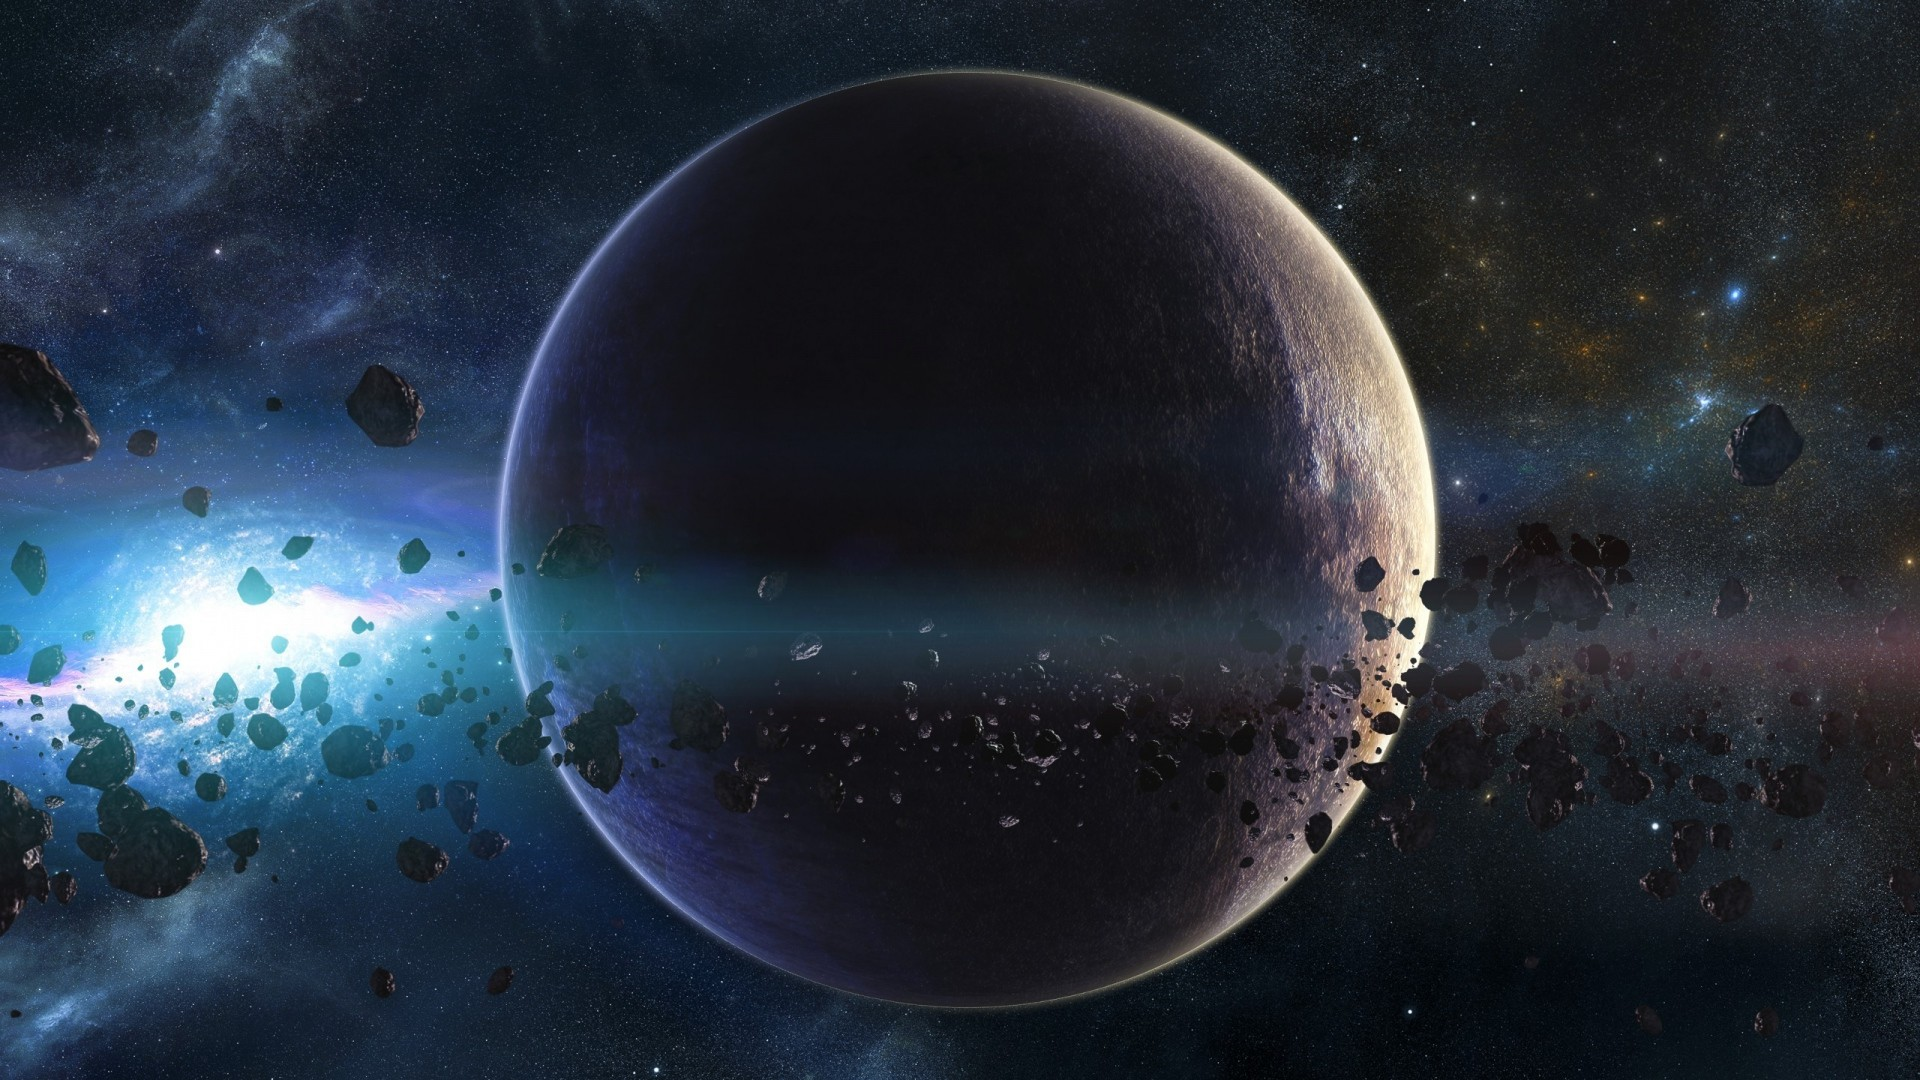 … Background Full HD 1080p. Wallpaper space, planets,  asteroids, stars, belt, galaxy